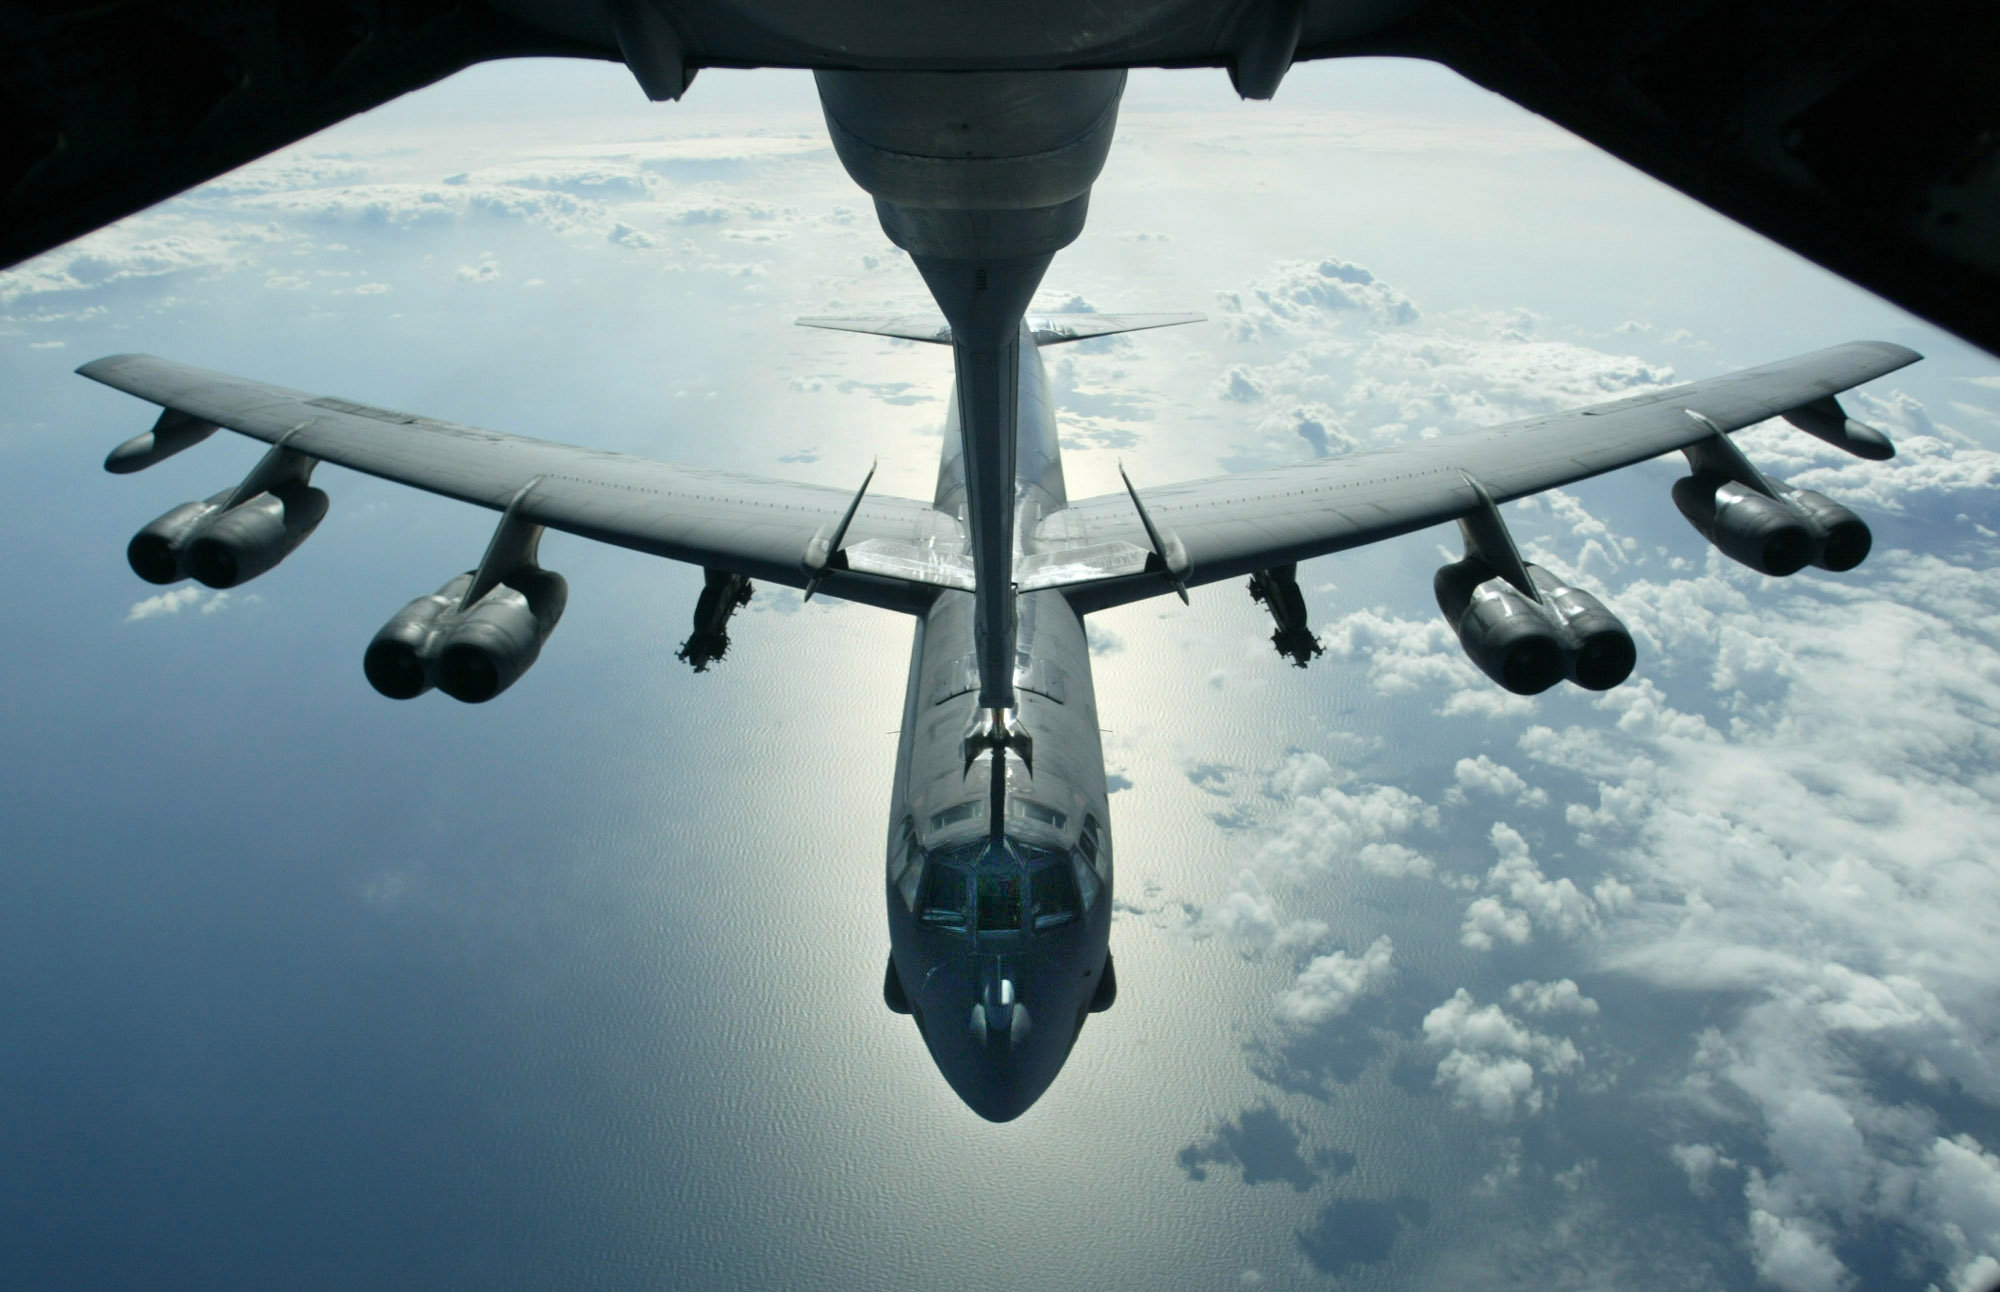 A US Air Force B-52 bomber returning from a mission over Iraq is refueling from a KC-10 plane over the Black Sea, in this Friday, March 28, 2003 photo